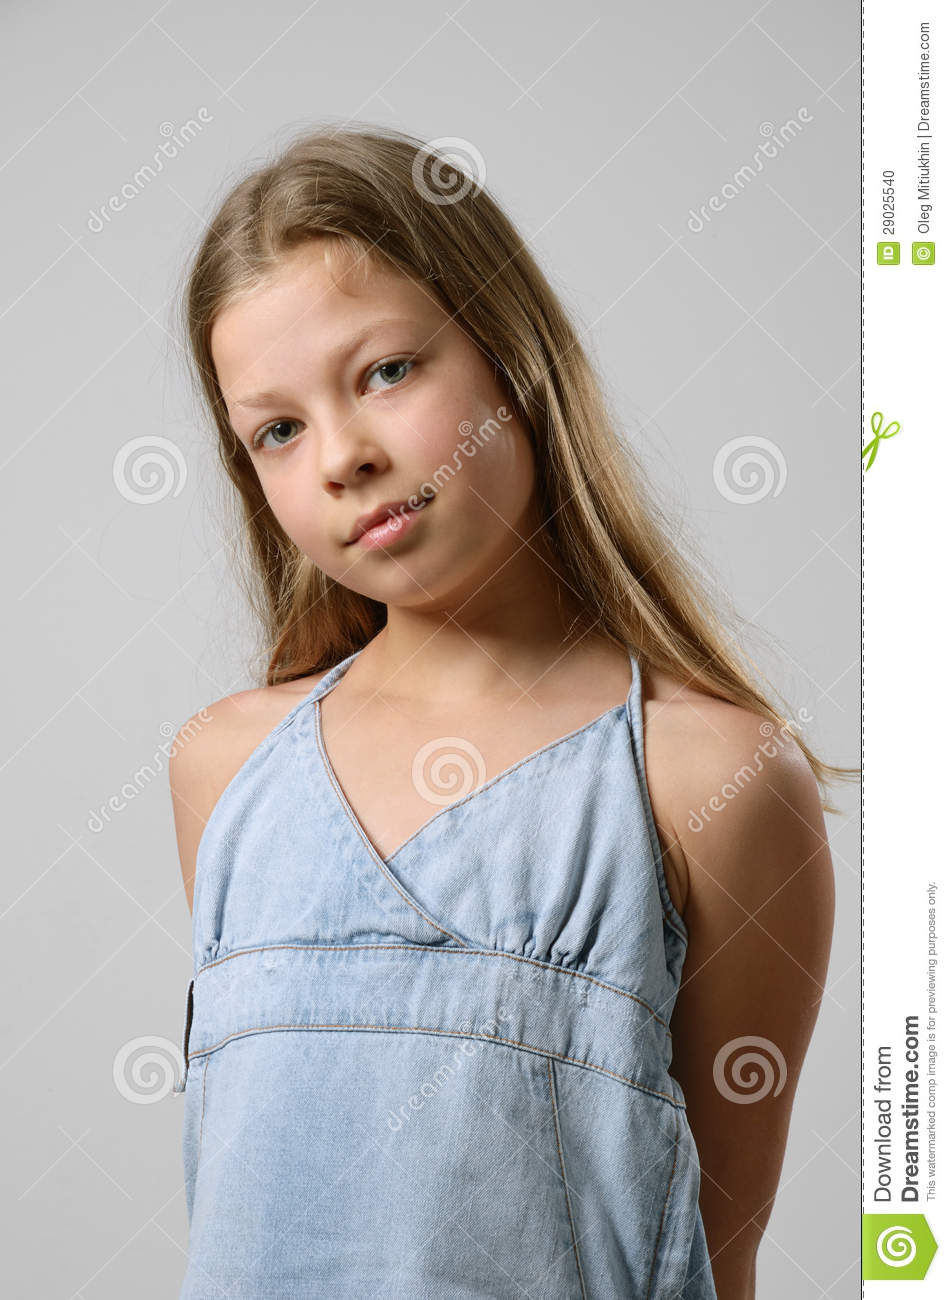 preteen girl is standing and looking at the camera. Her fair long ...